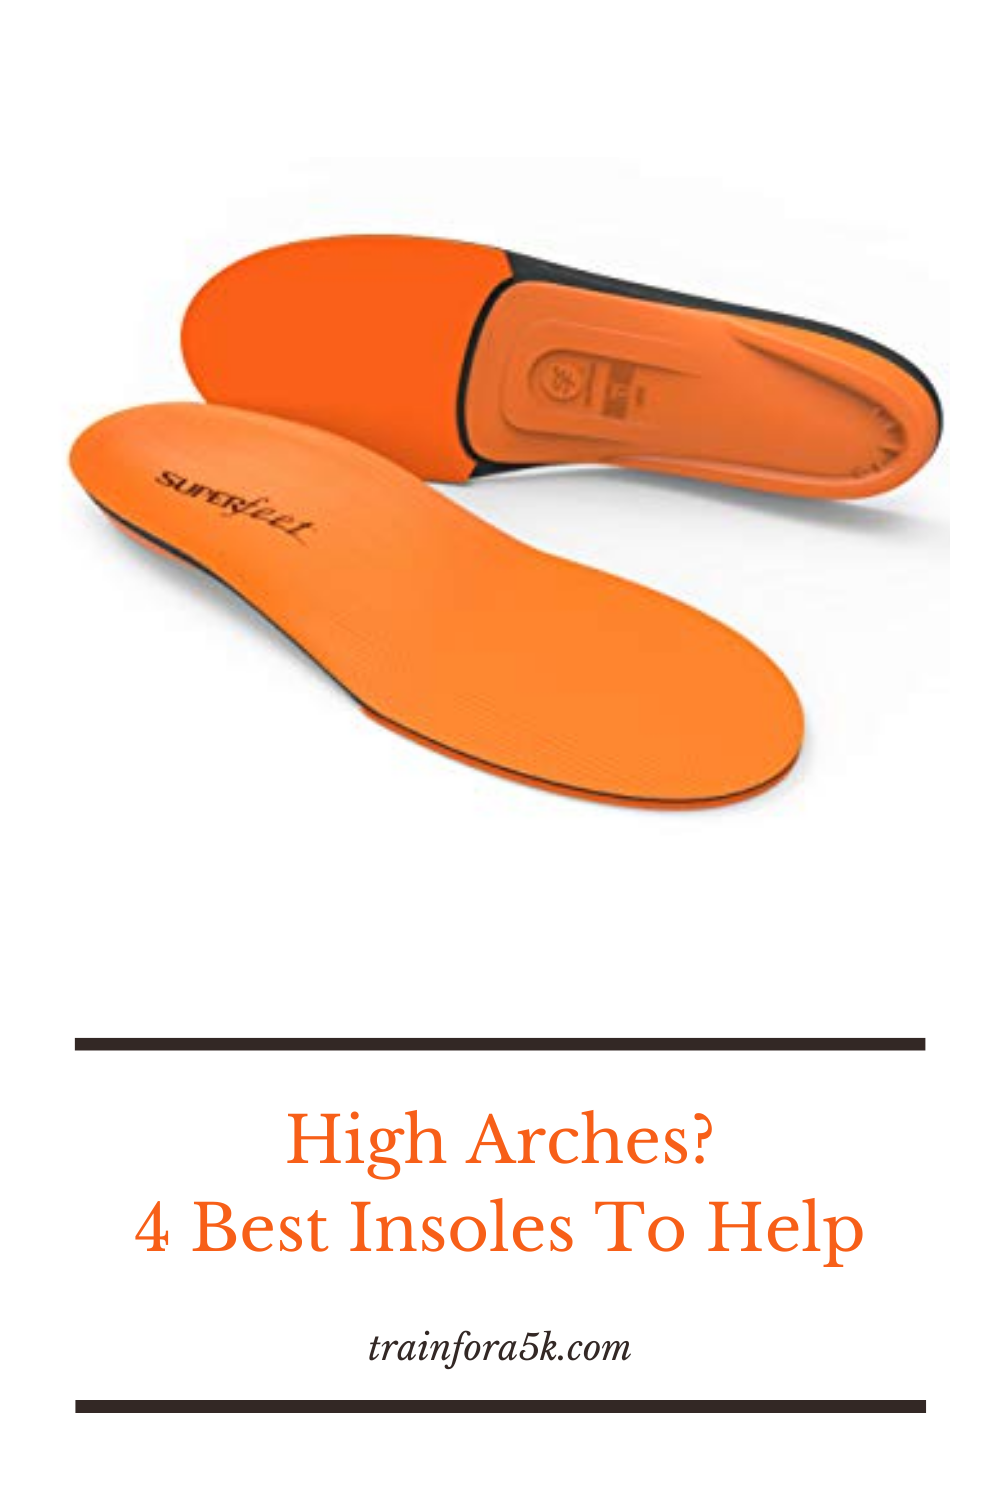 44+ Shoe inserts for high arches ideas in 2021